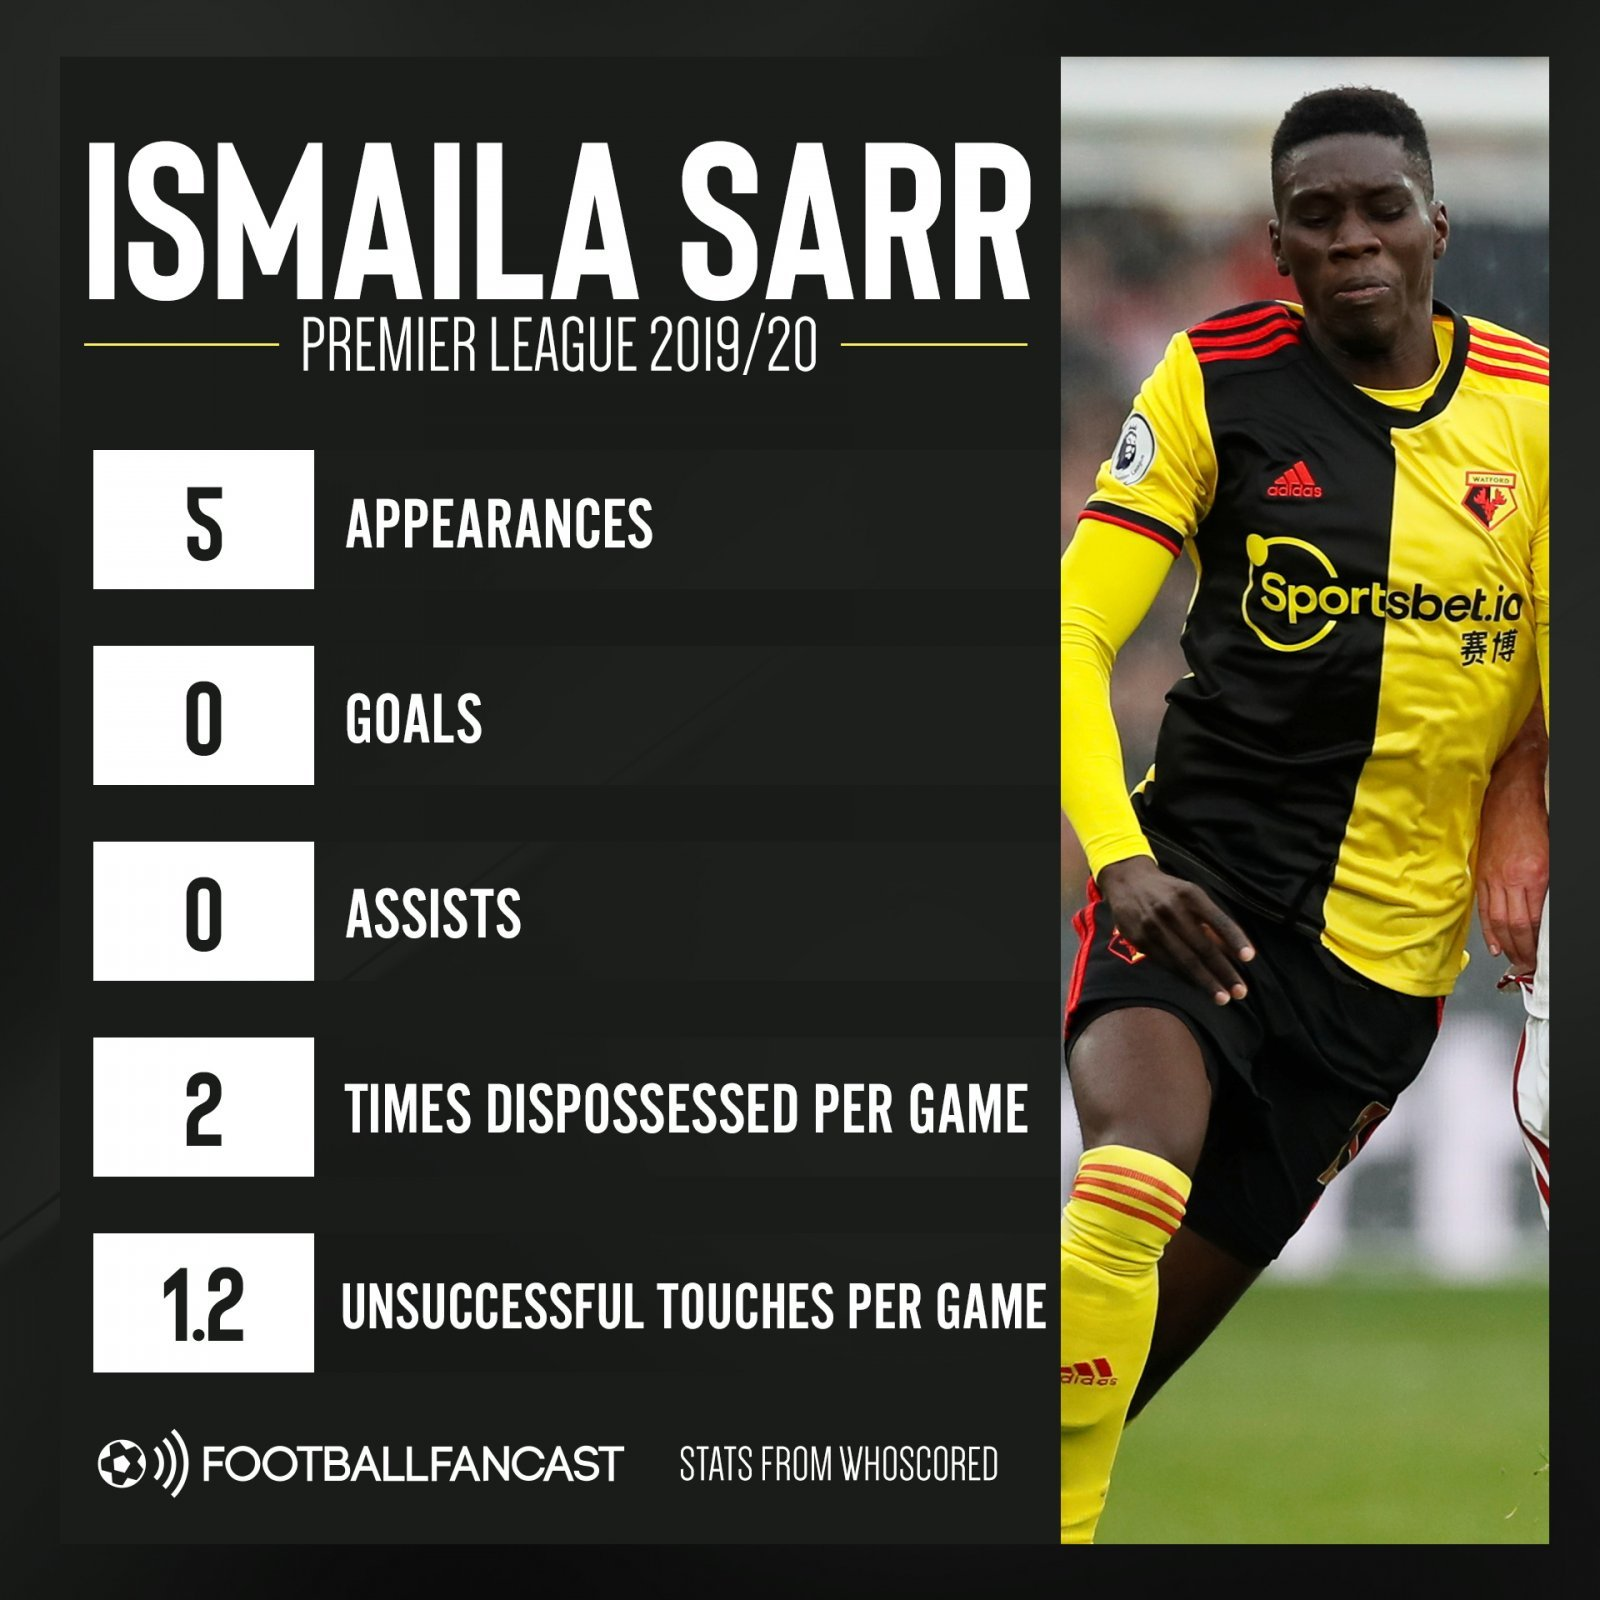 Ismaila Sarr Premier League 2019 19 stats so far - Bullet dodged: Palace may be thanking lucky stars reported £25.6m summer bid failed - opinion